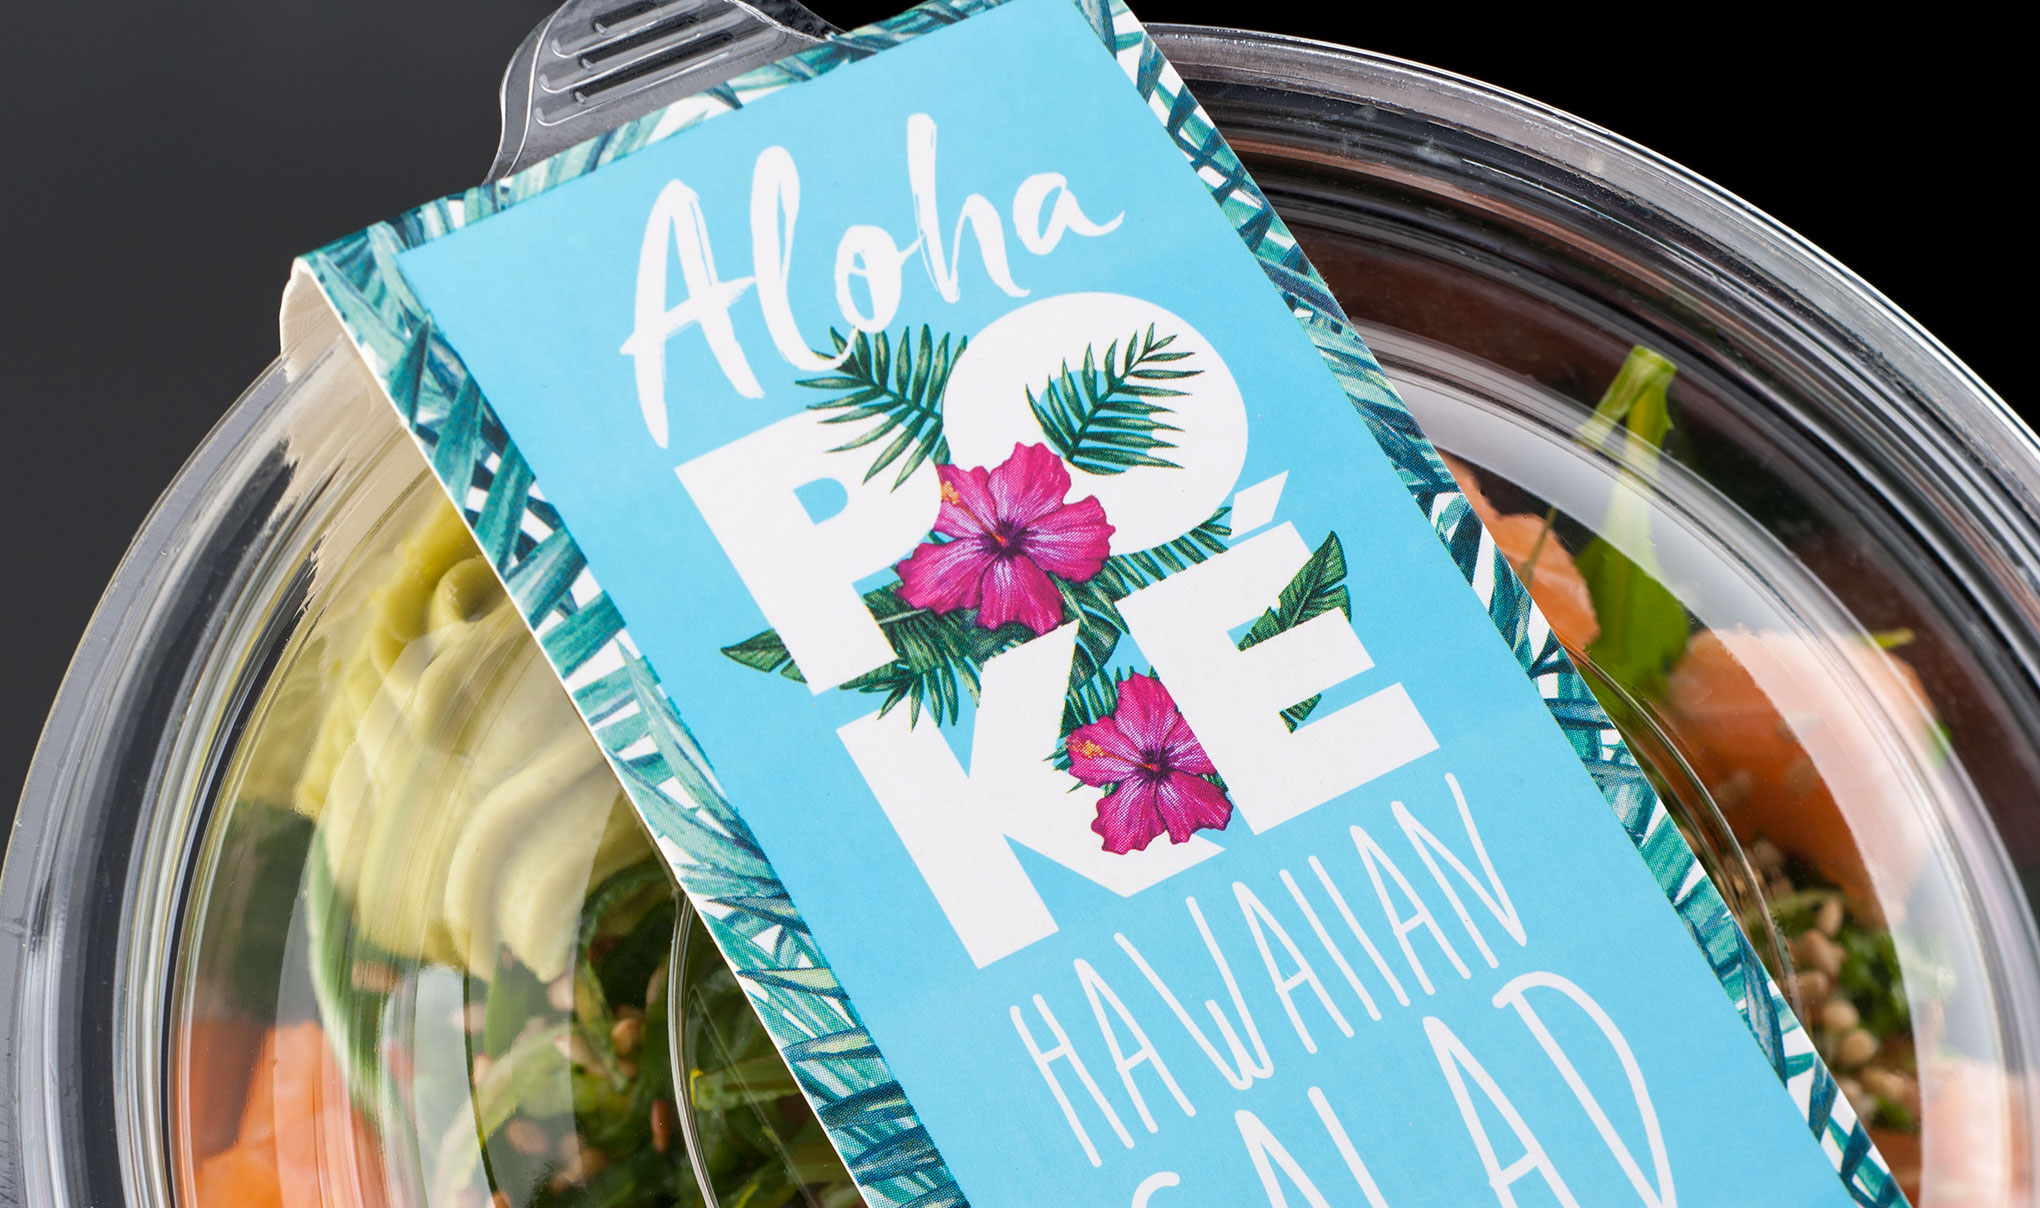 Creative food packaging design - Waitrose Aloha Poké Salmon Bowl - Creative design agency, Flipflop Design